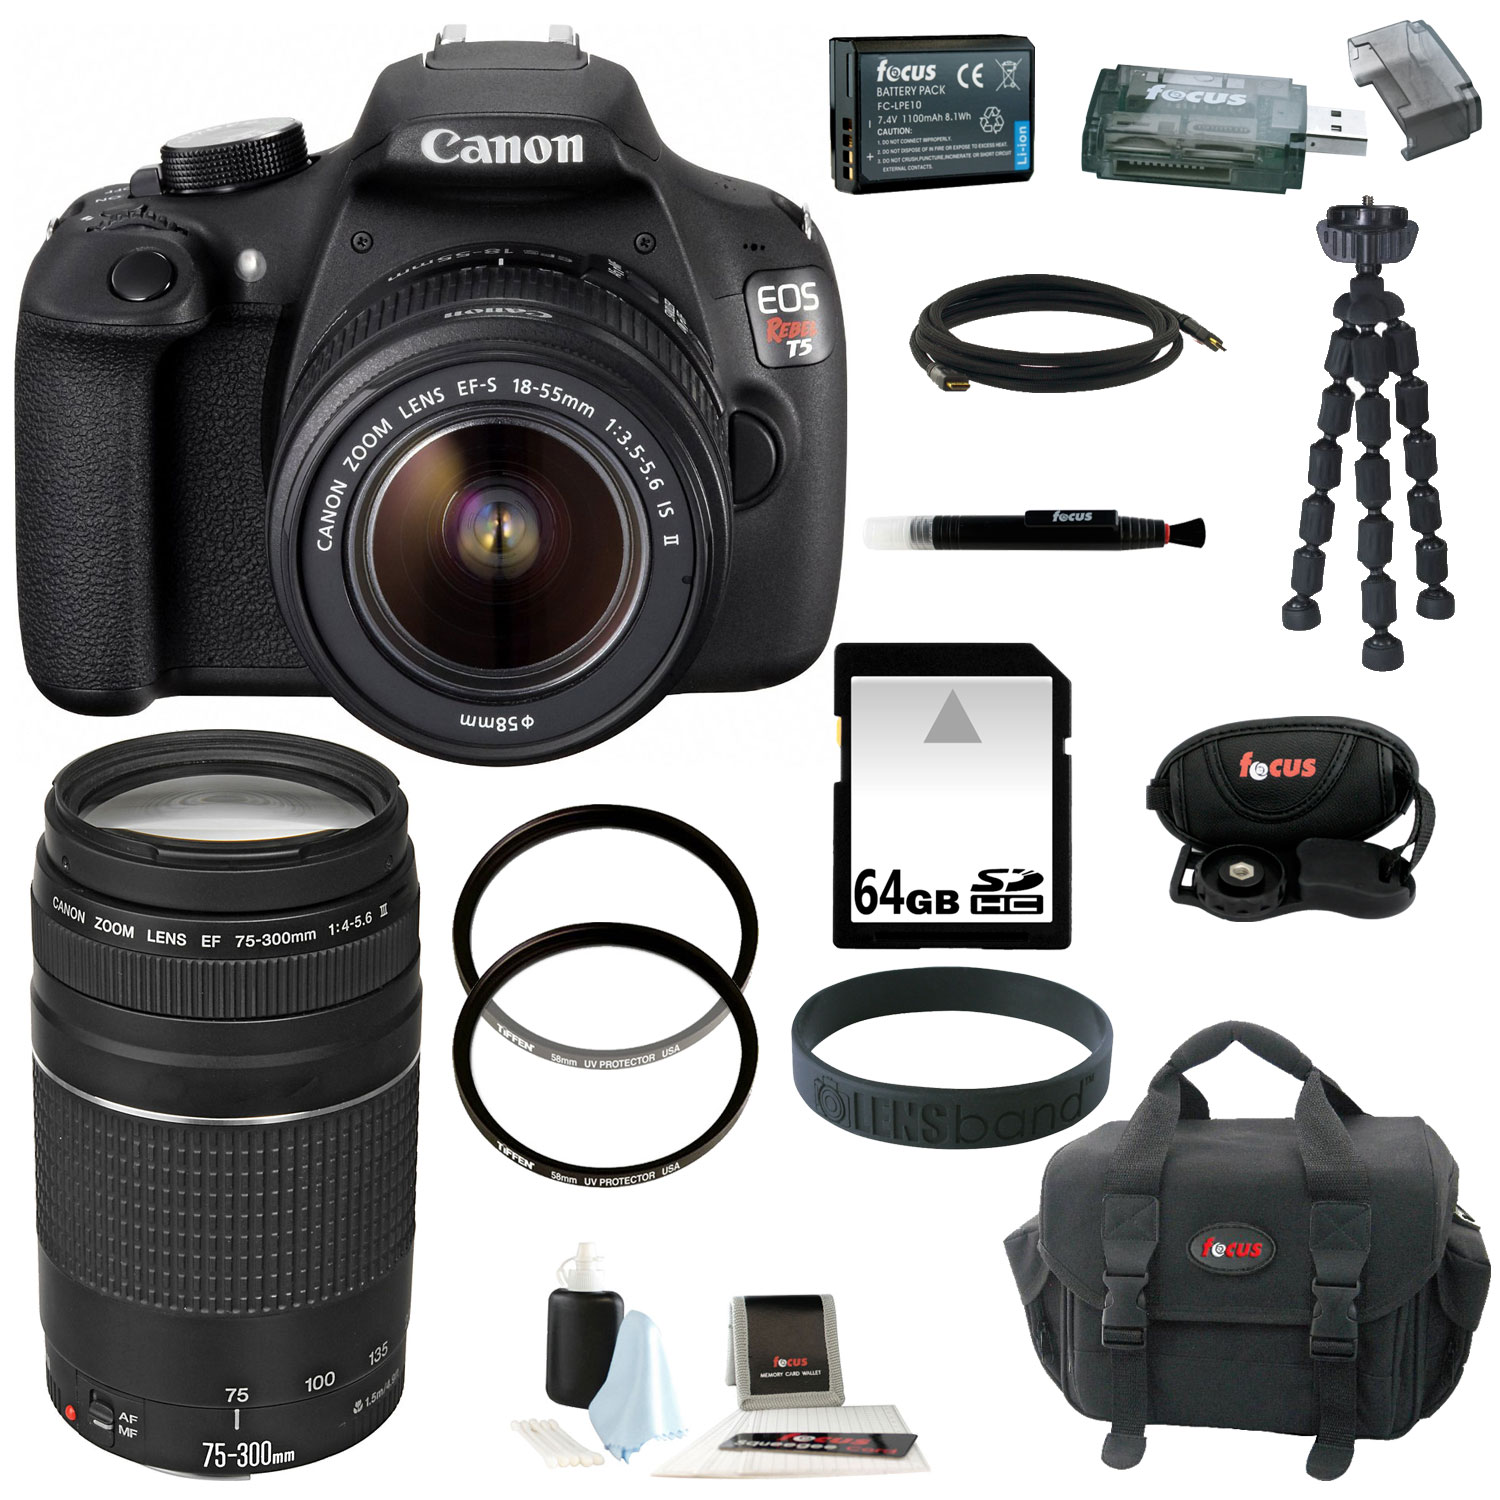 Canon EOS Rebel T5 DSLR Camera with 18-55mm and 75-300mm Lens Bundle and 64GB Deluxe Accessory Kit